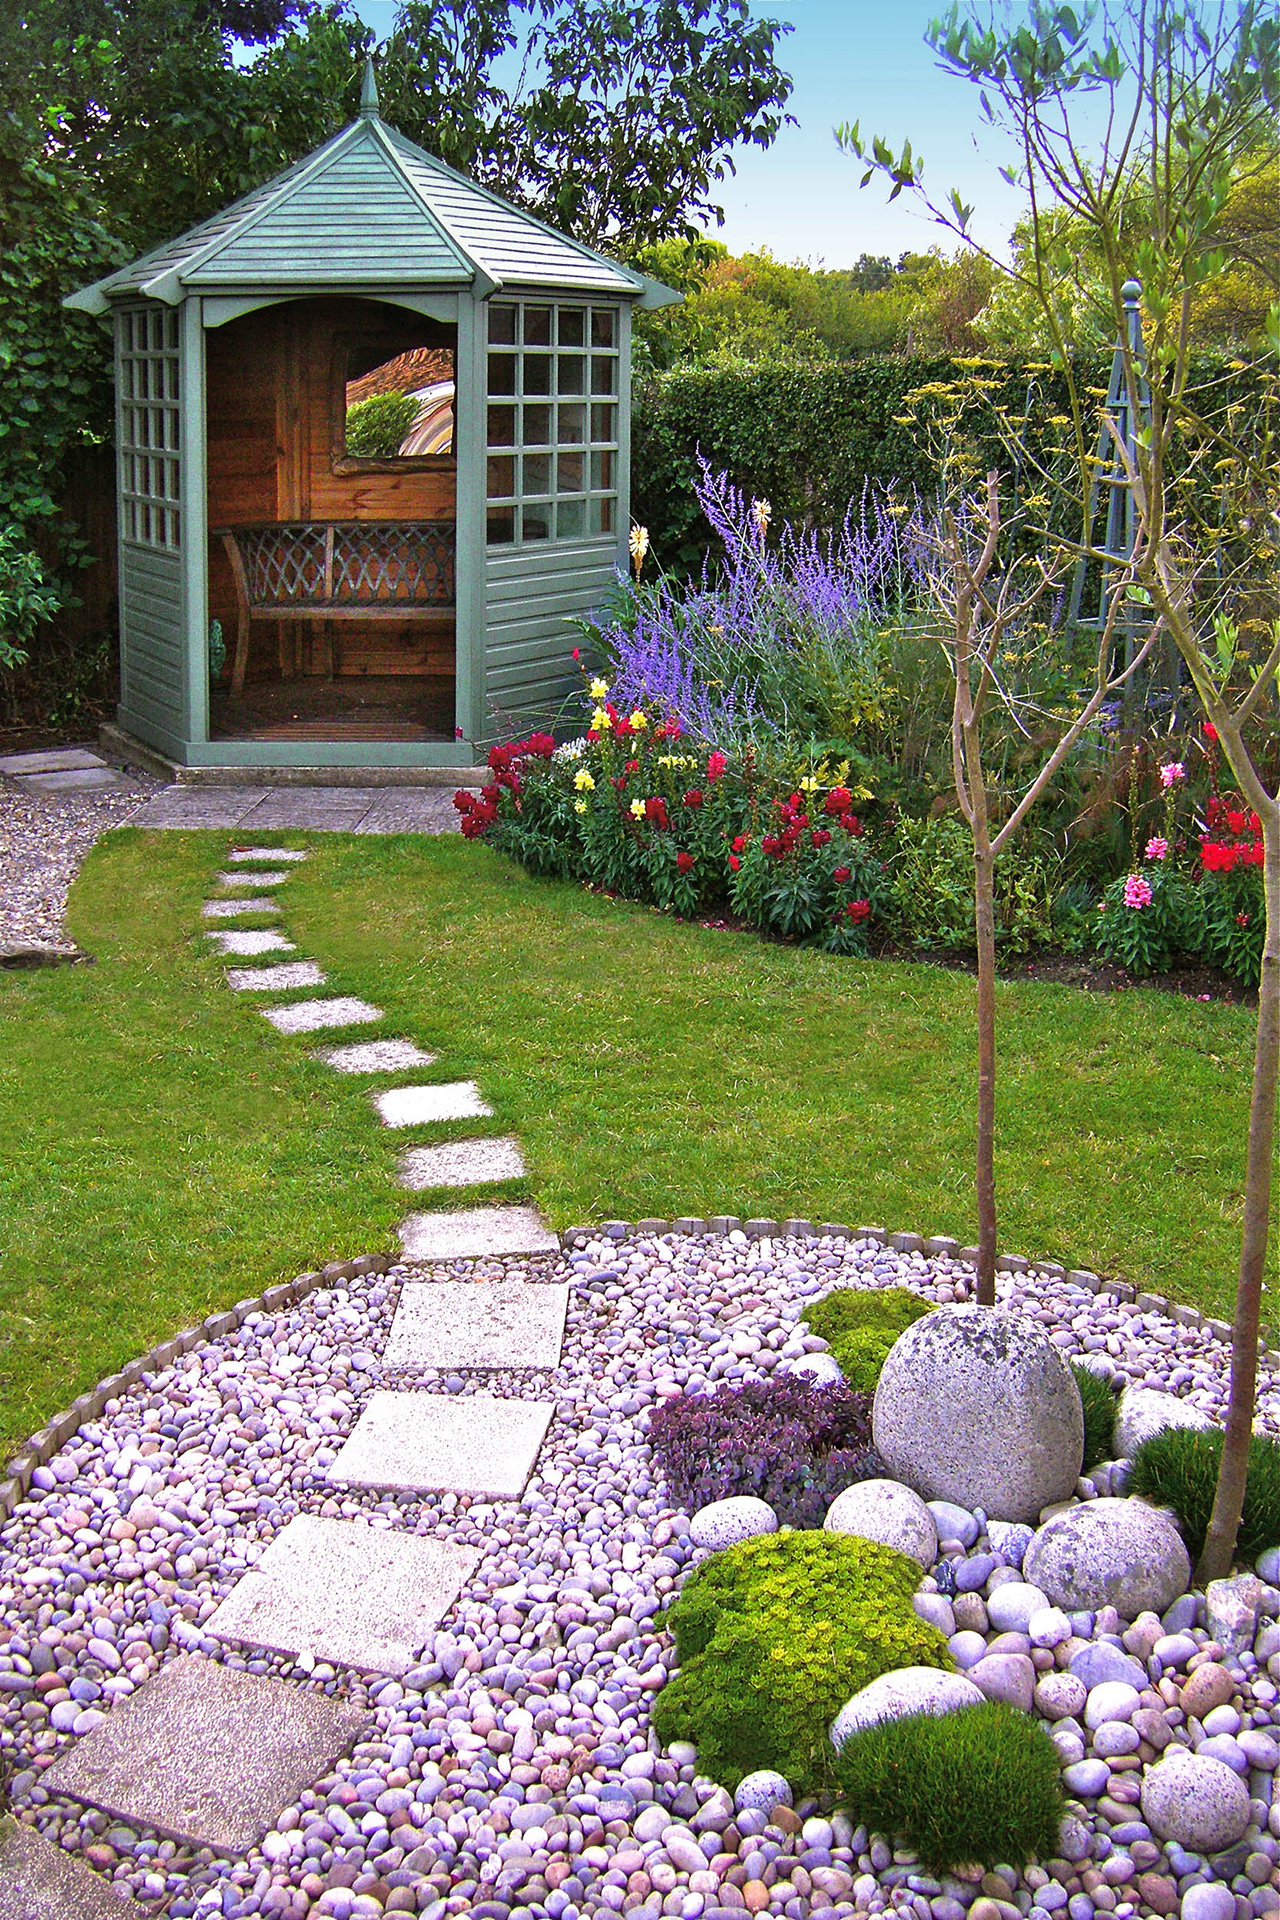 Comfortable Designs Backyard Landscaping S Backyard Landscaping Ideas A Room Your Own Backyard Landscaping Ideas 2018 Photo Gallery outdoor Images Of Backyard Landscaping